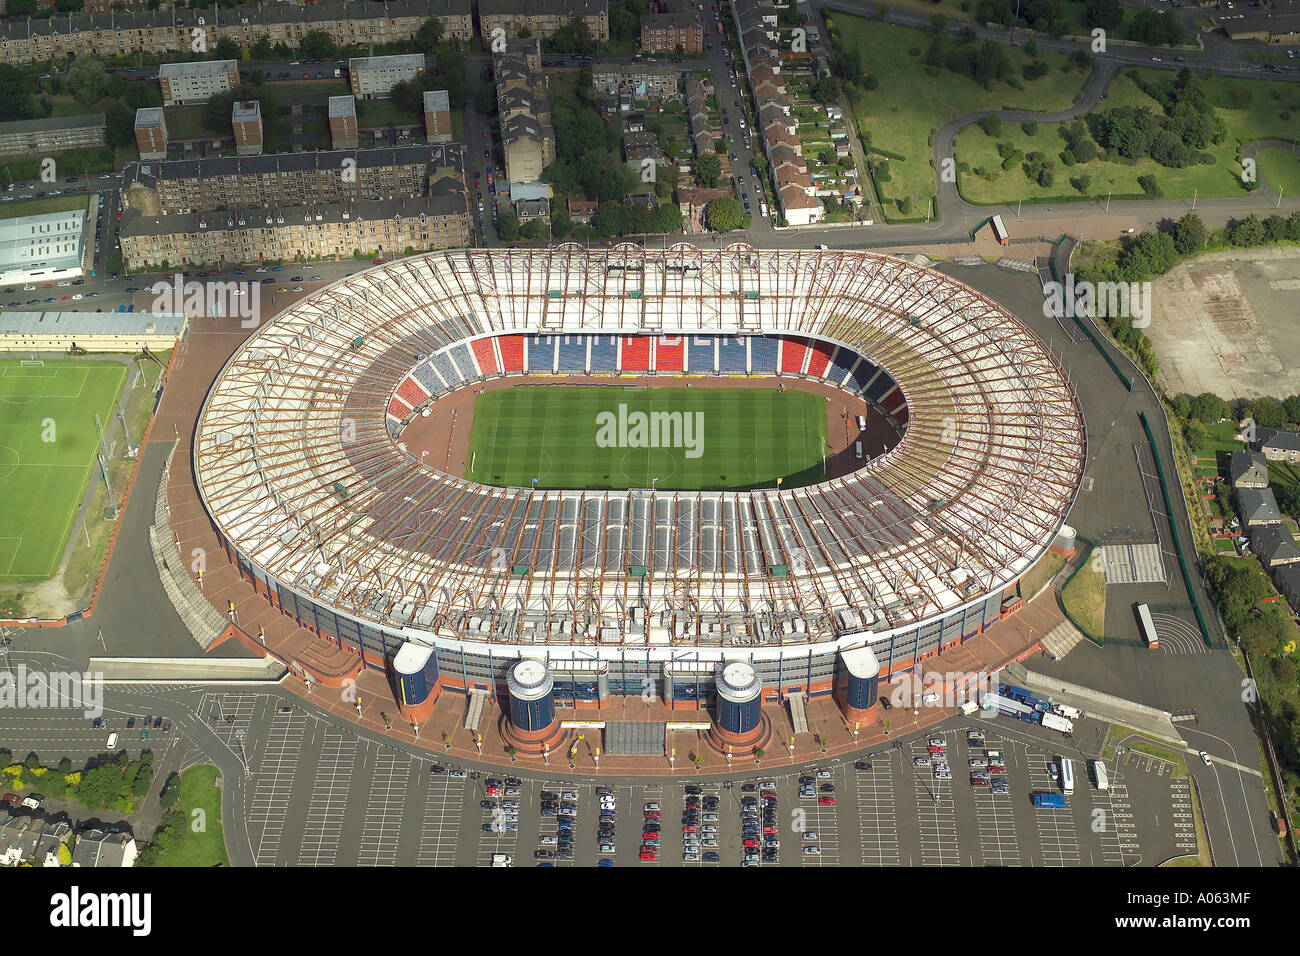 Aerial View Of Hampden Park Stadium In Glasgow Scotlands National Football Also Home Queens Club